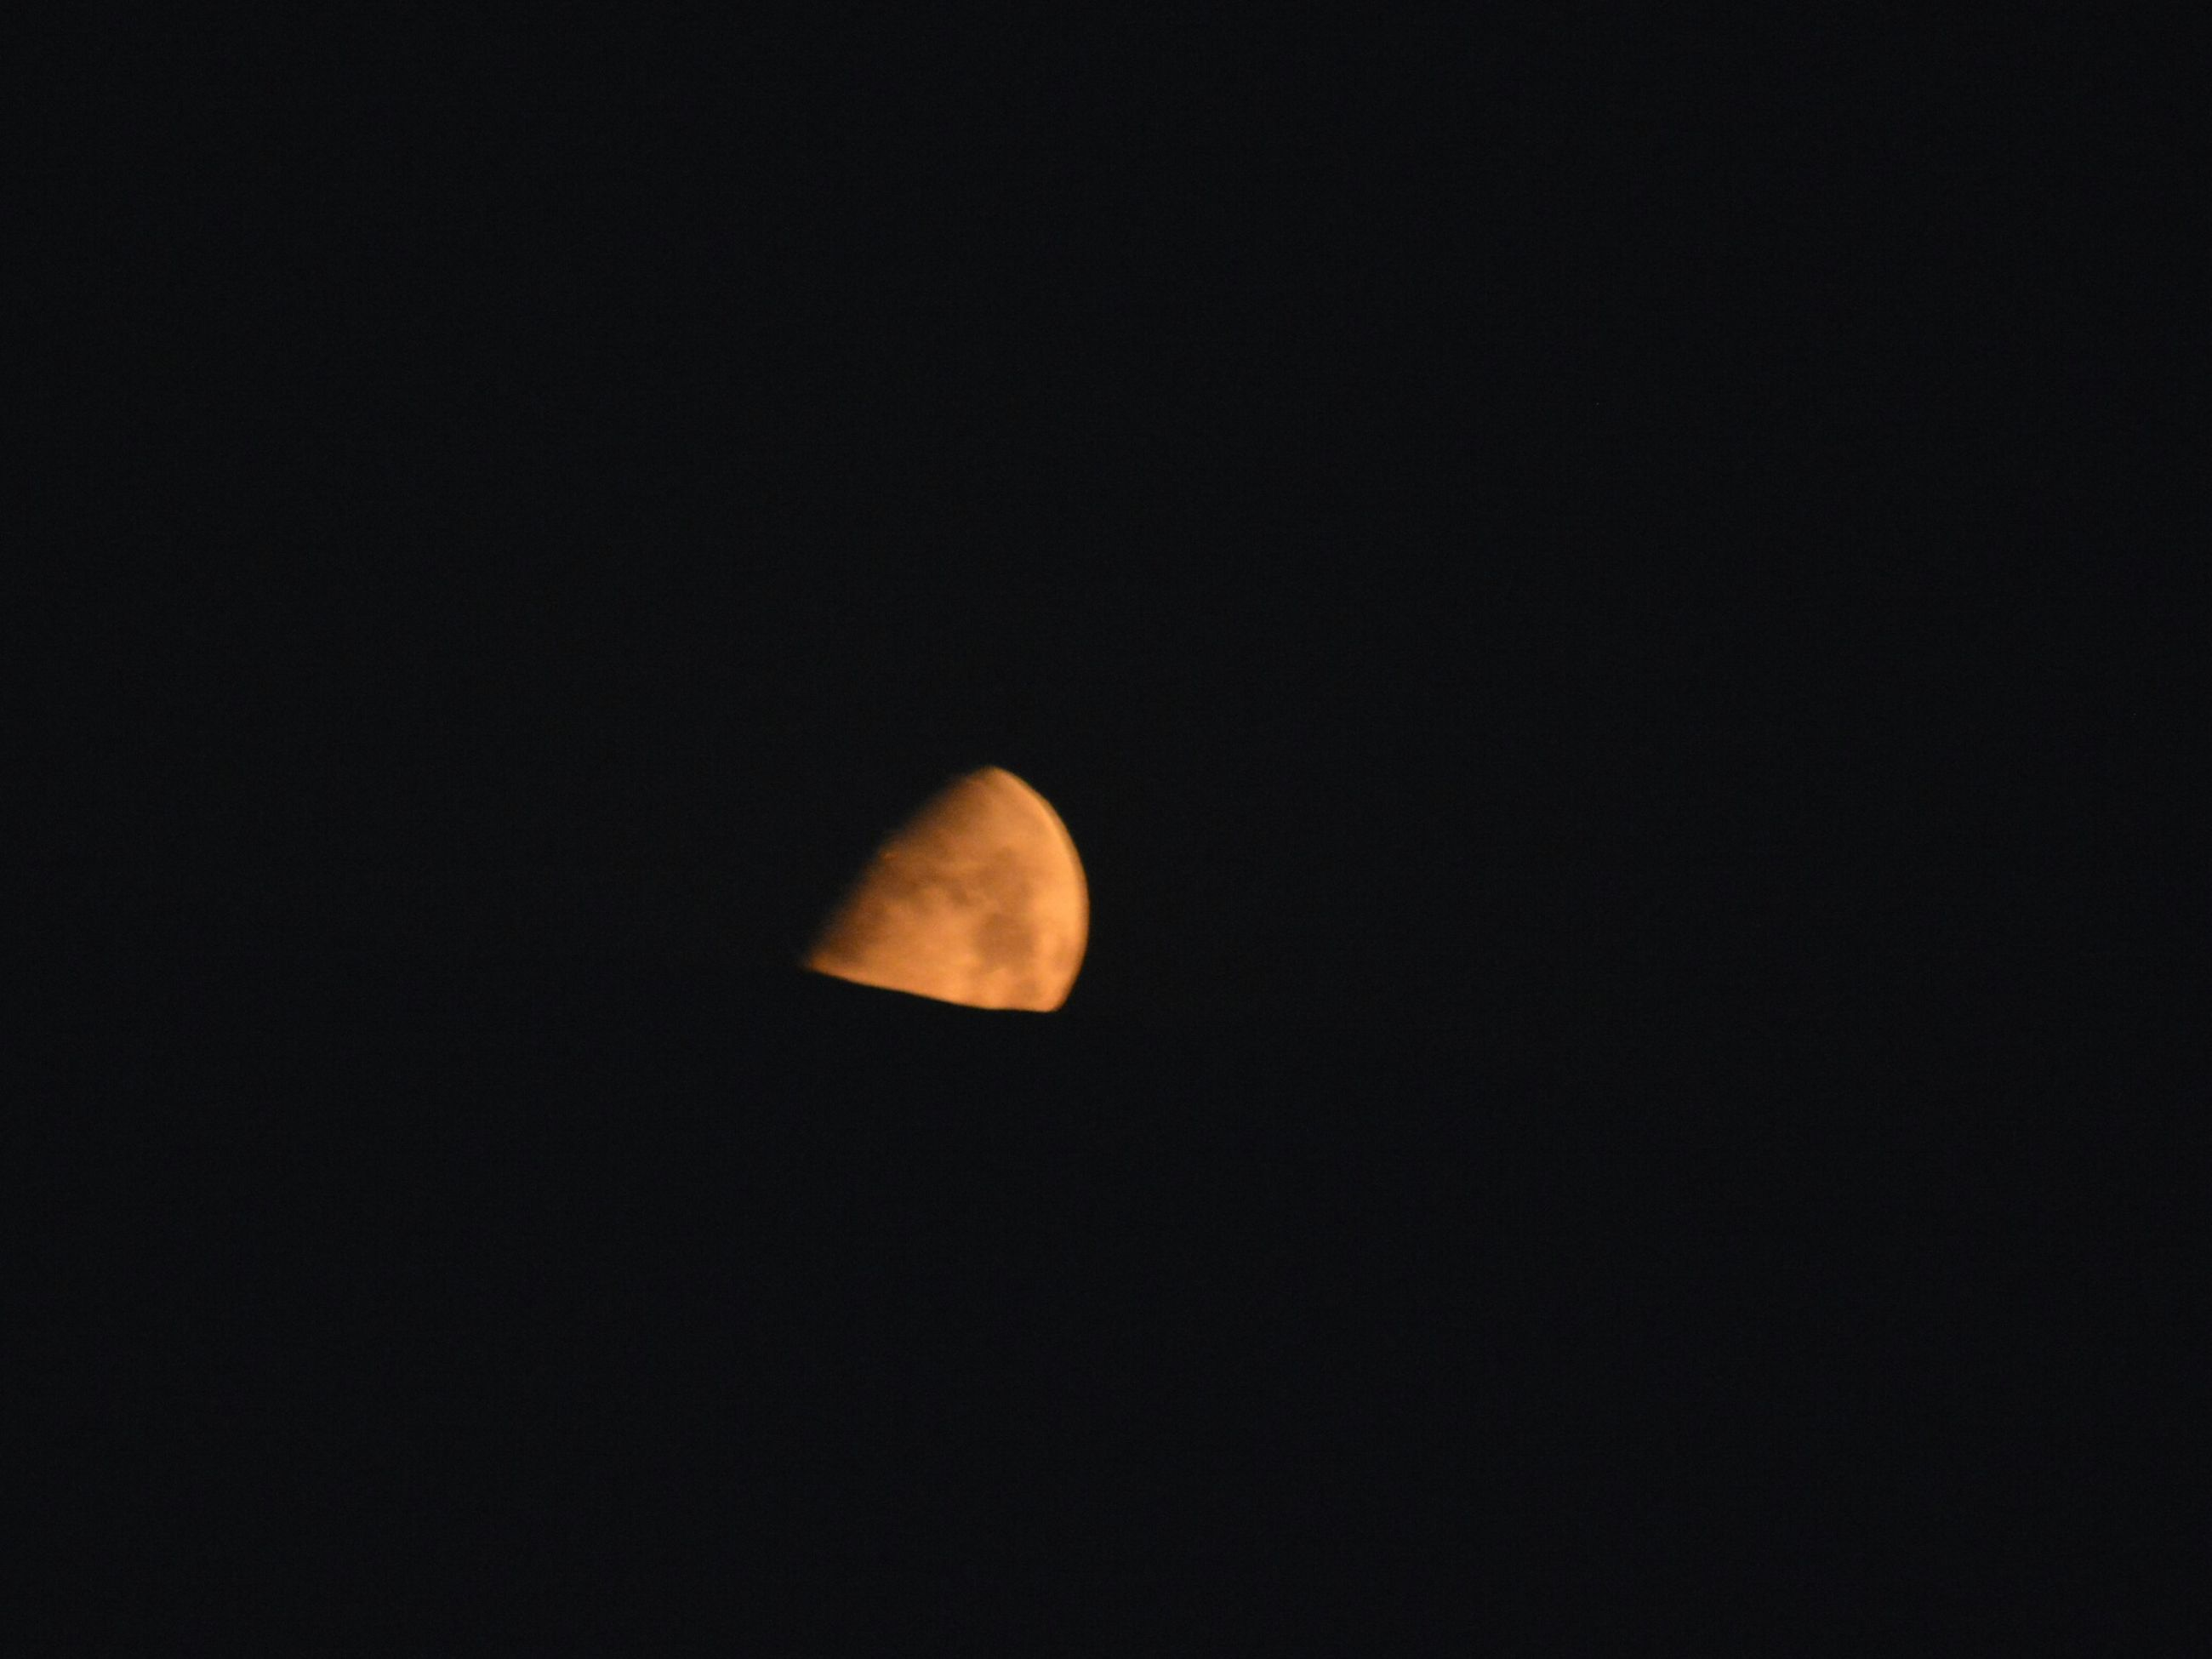 moon, astronomy, beauty in nature, night, nature, planetary moon, copy space, scenics, moon surface, tranquility, tranquil scene, half moon, space, no people, low angle view, space exploration, outdoors, sky, clear sky, crescent